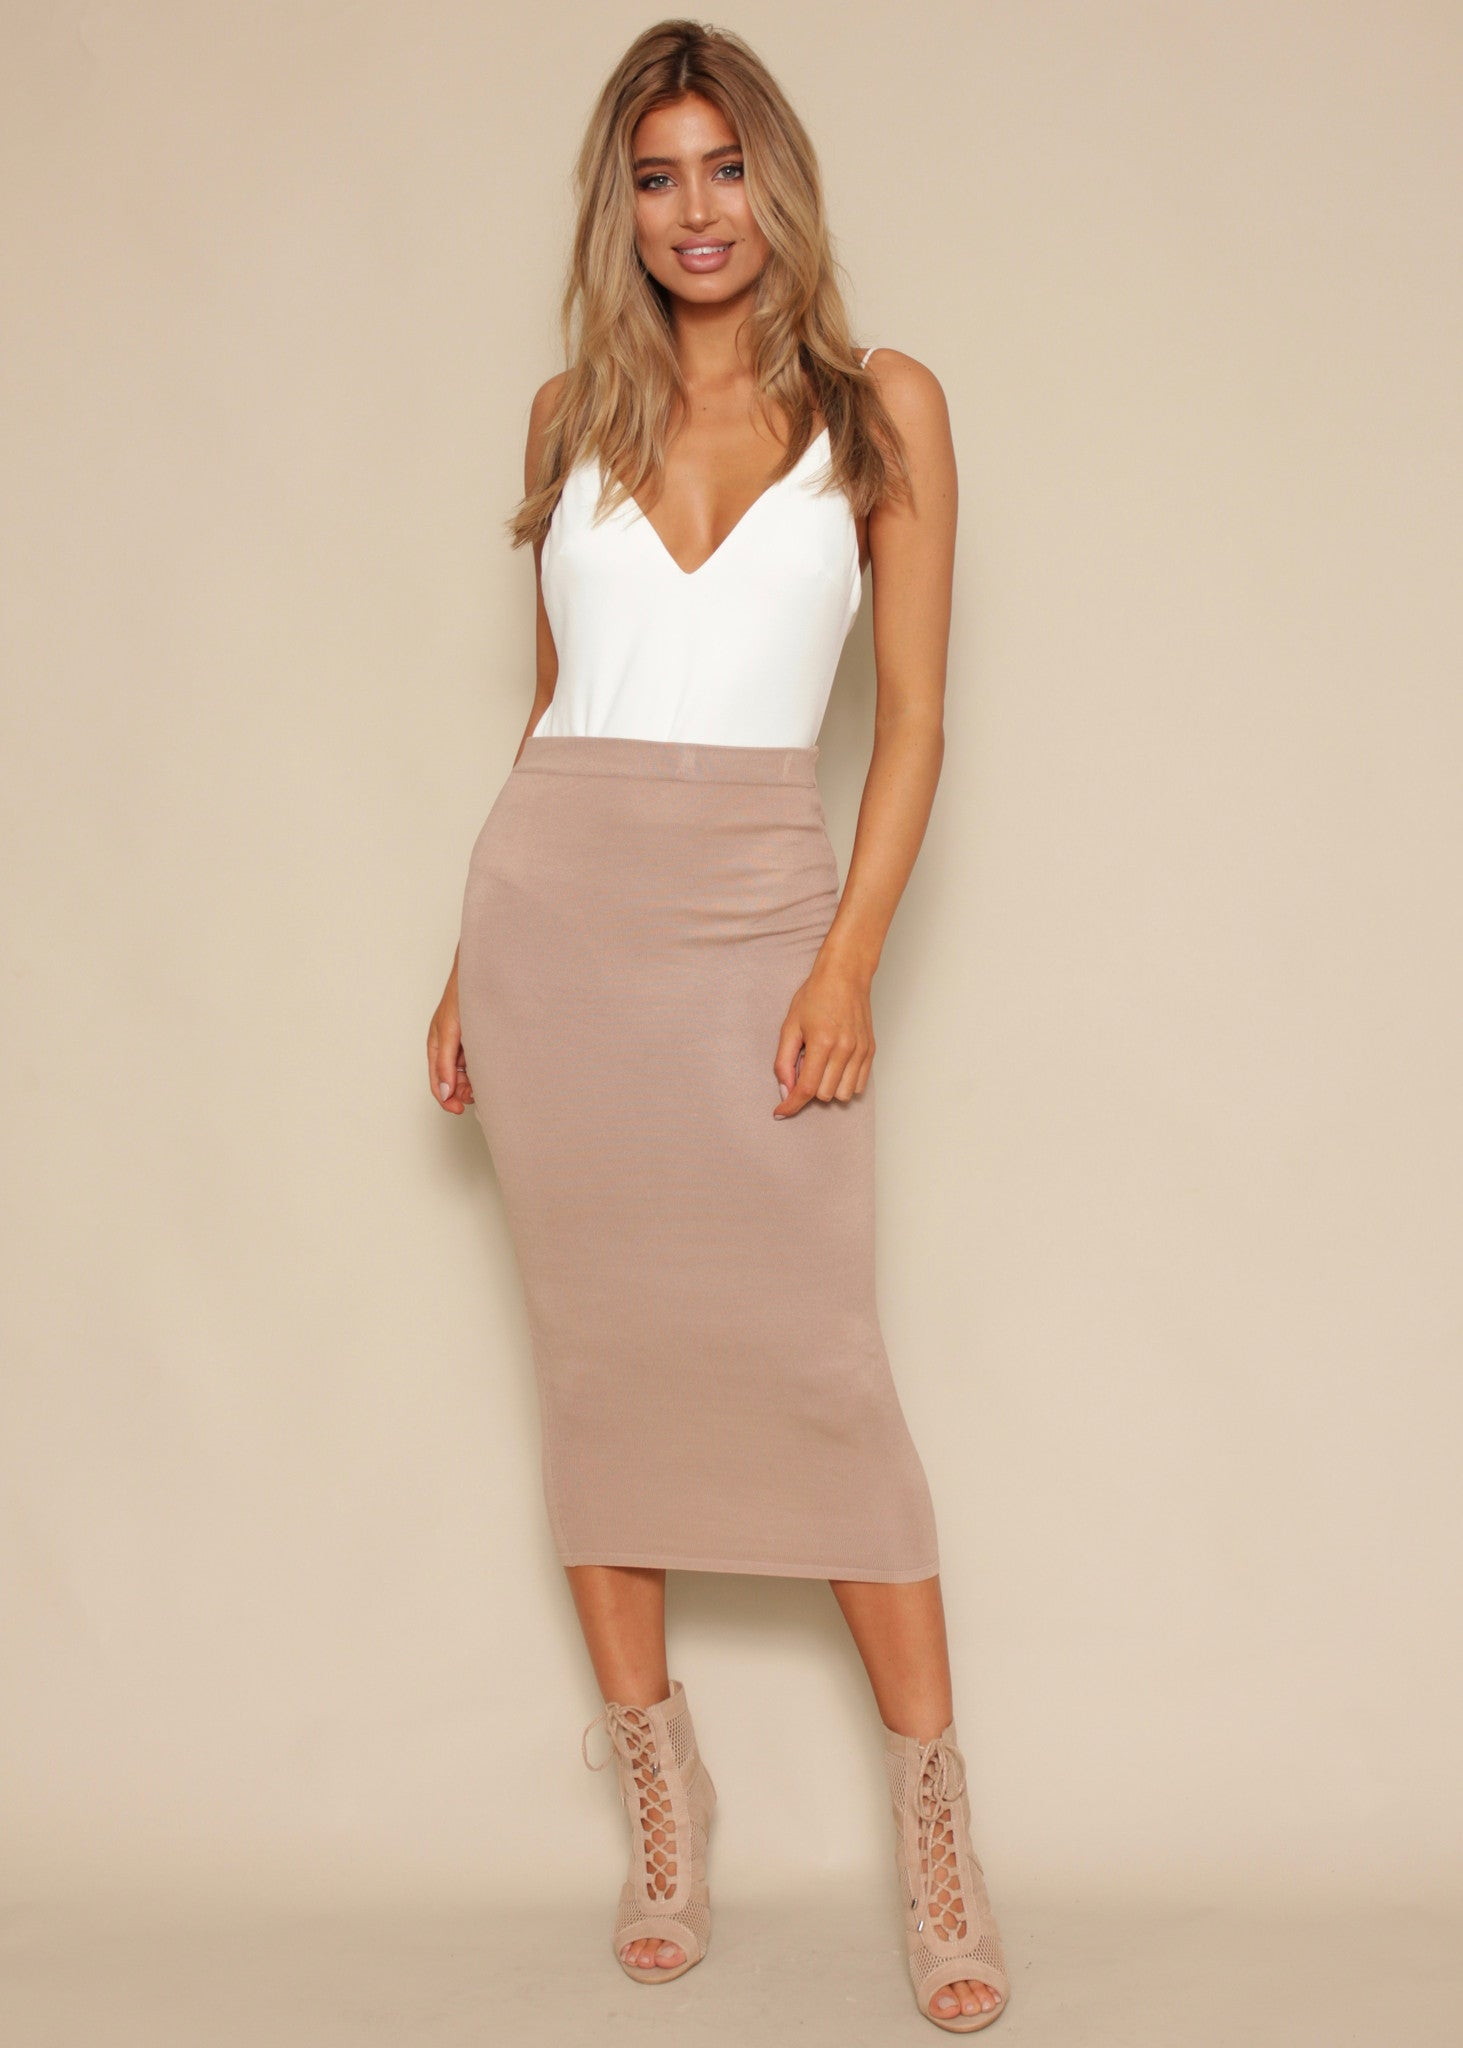 Revolver Knit Skirt - Beige